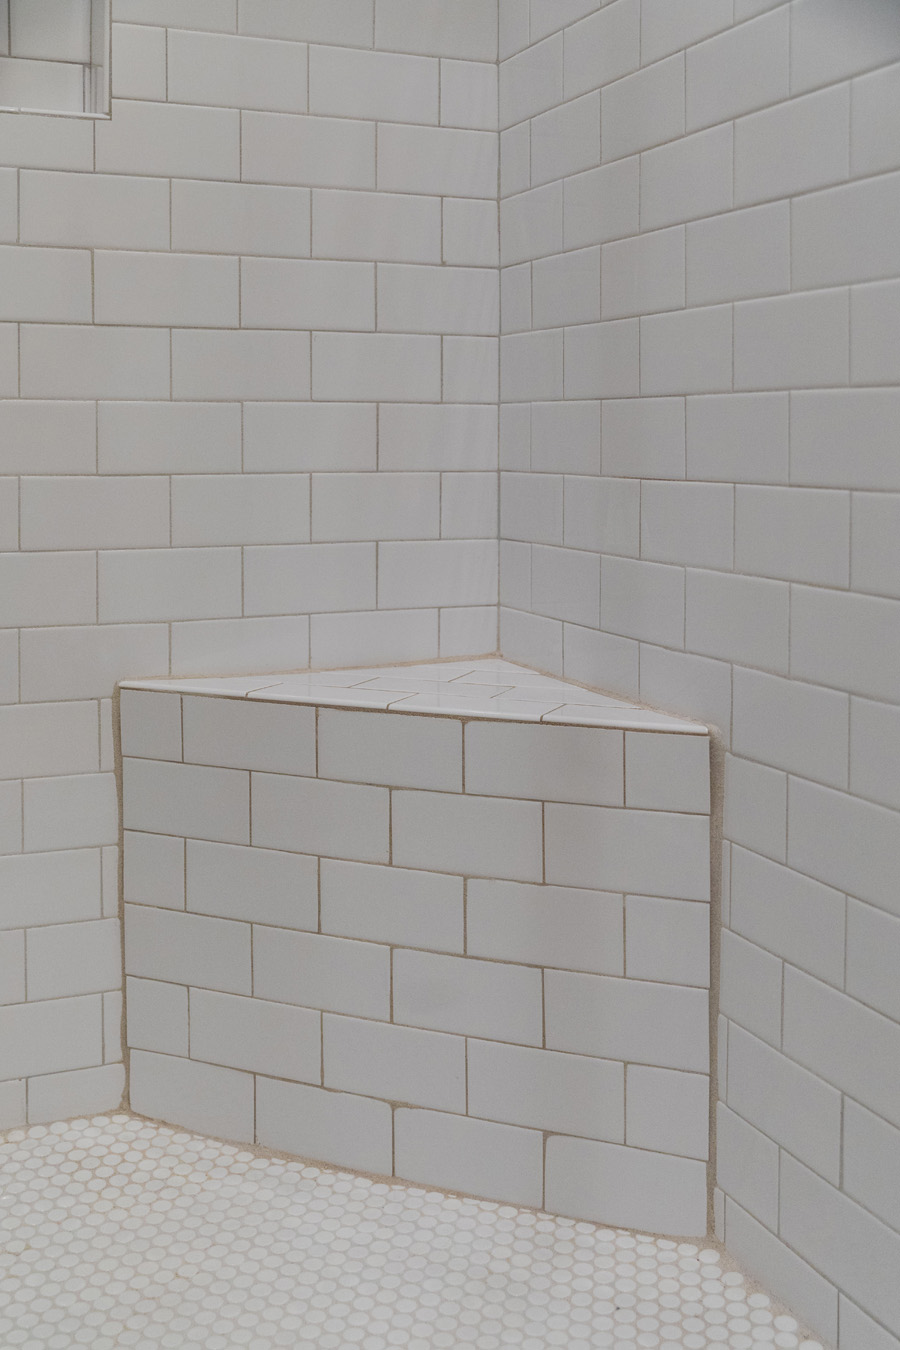 SHOWER TILE WITH SCHULTER CURB AND NICHE